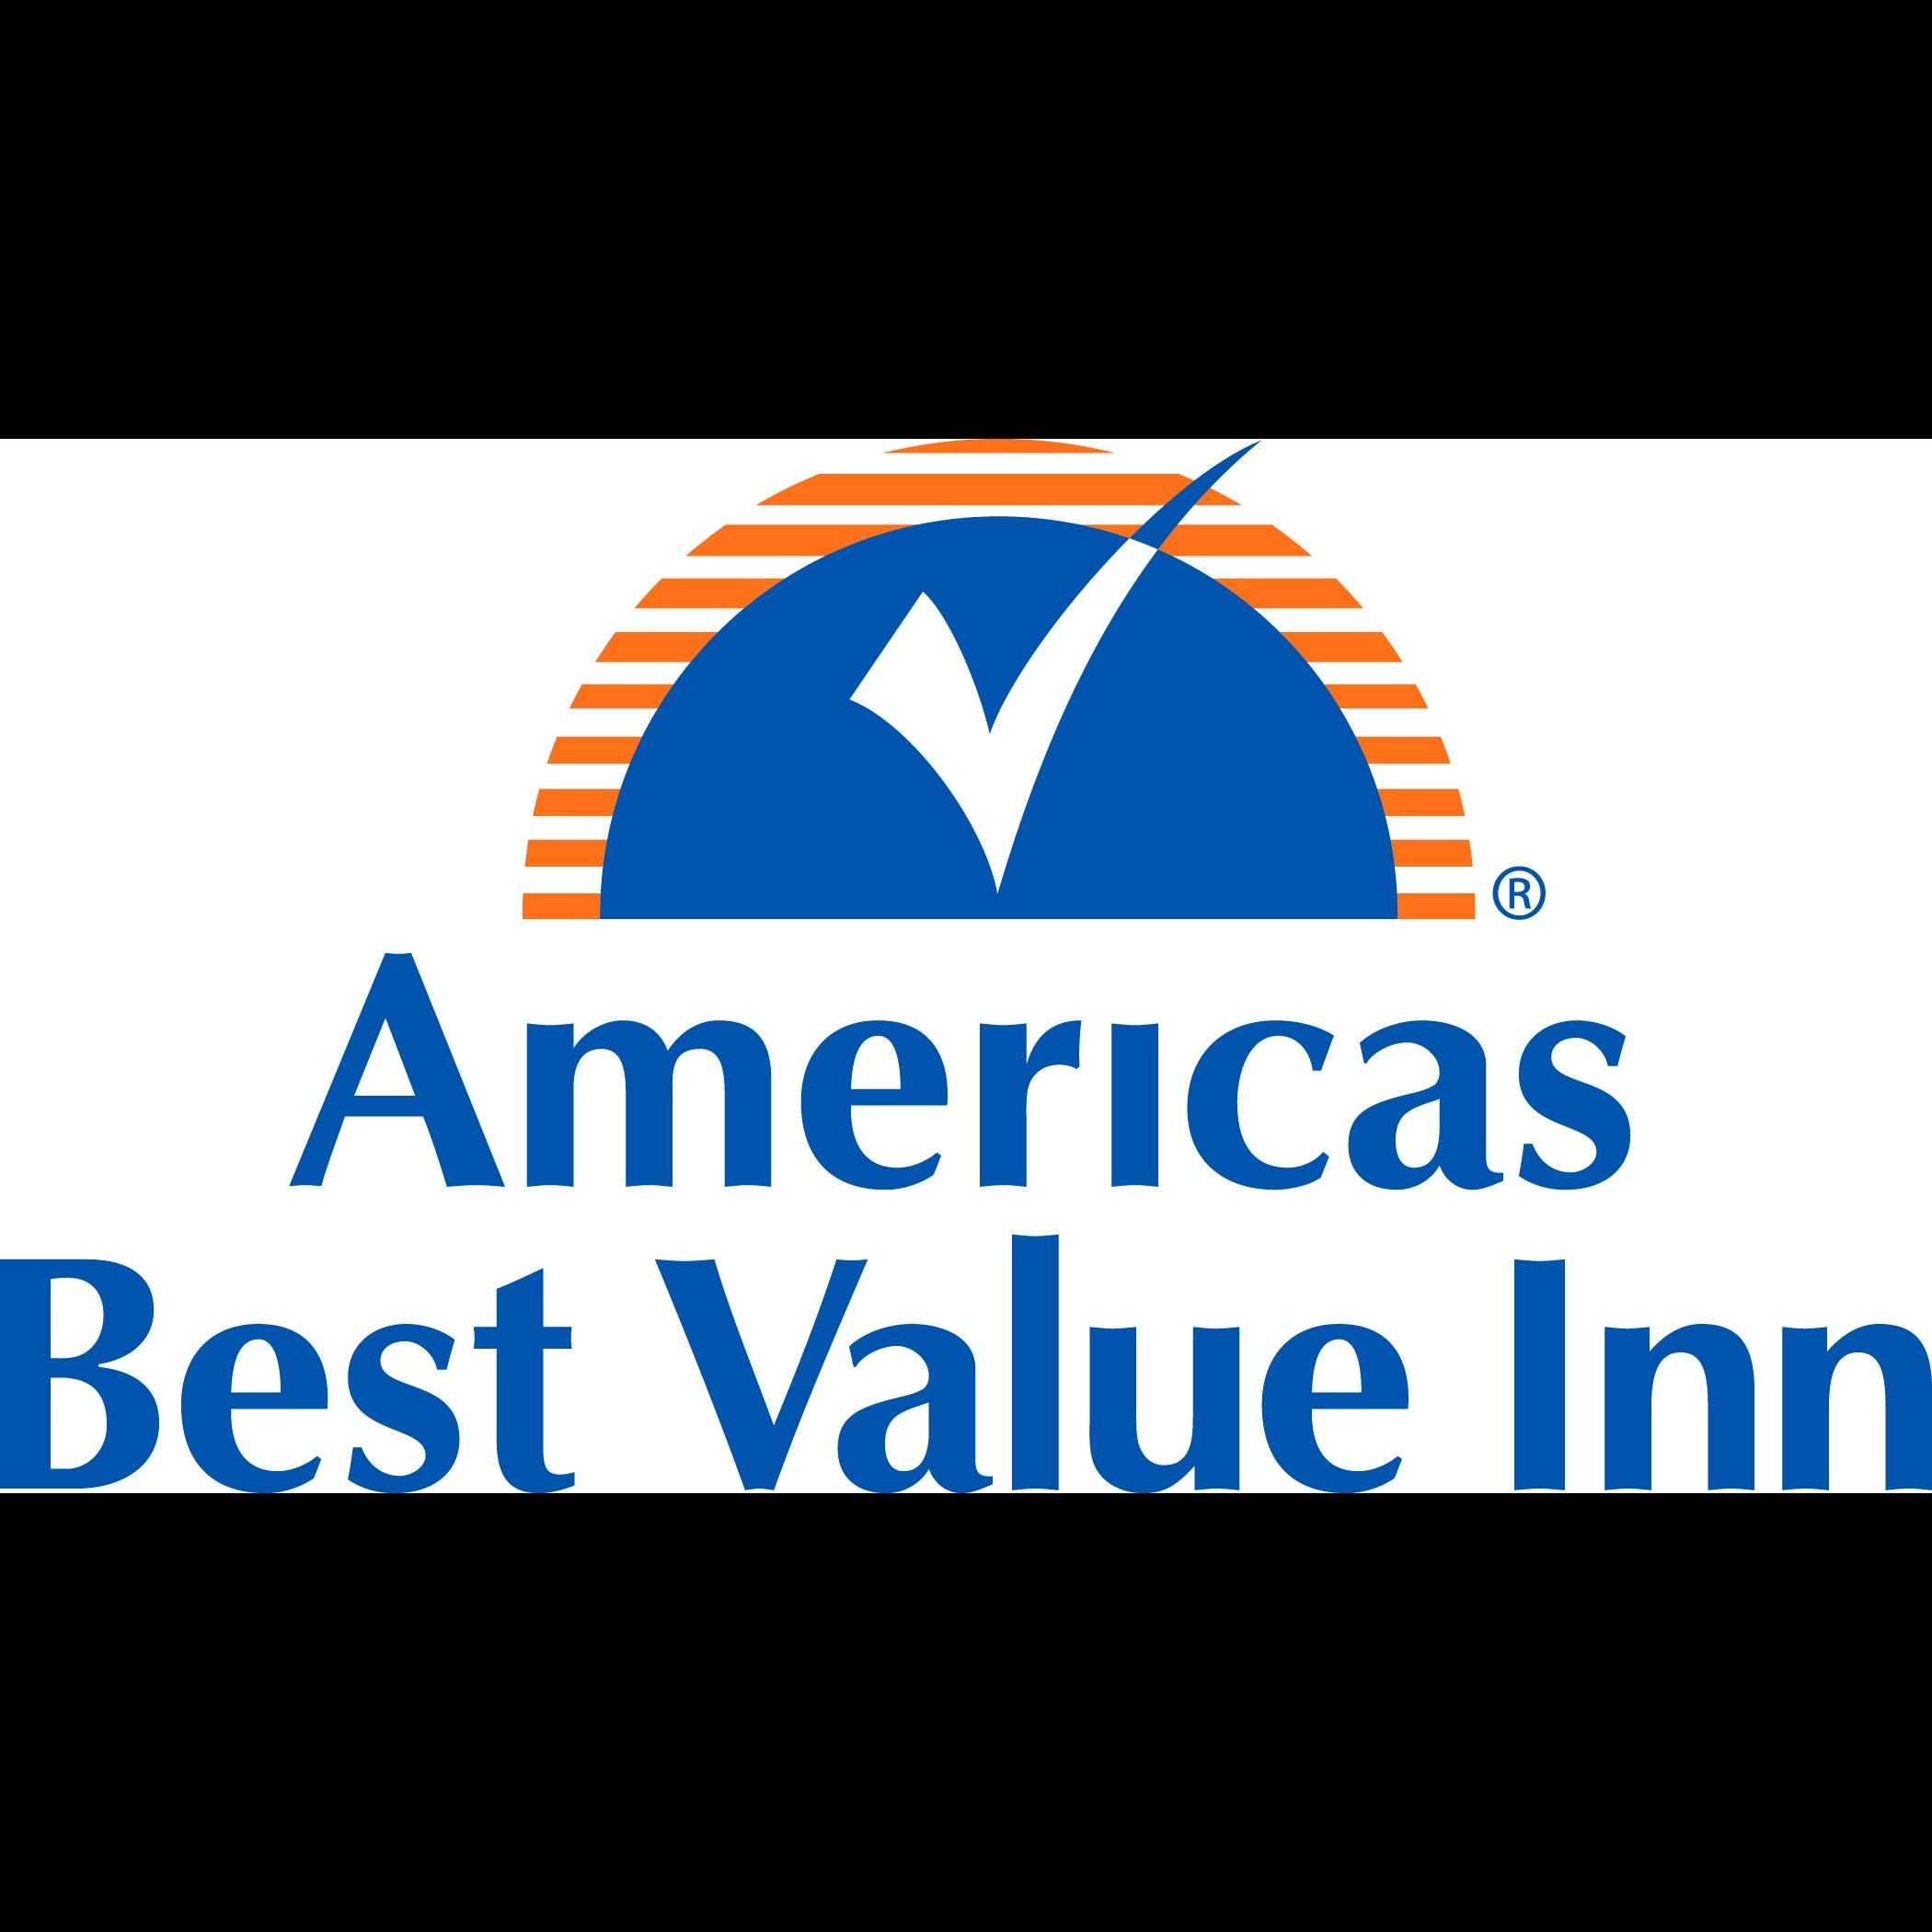 Americas Best Value Inn - Tyler/Lindale - Tyler, TX - Hotels & Motels